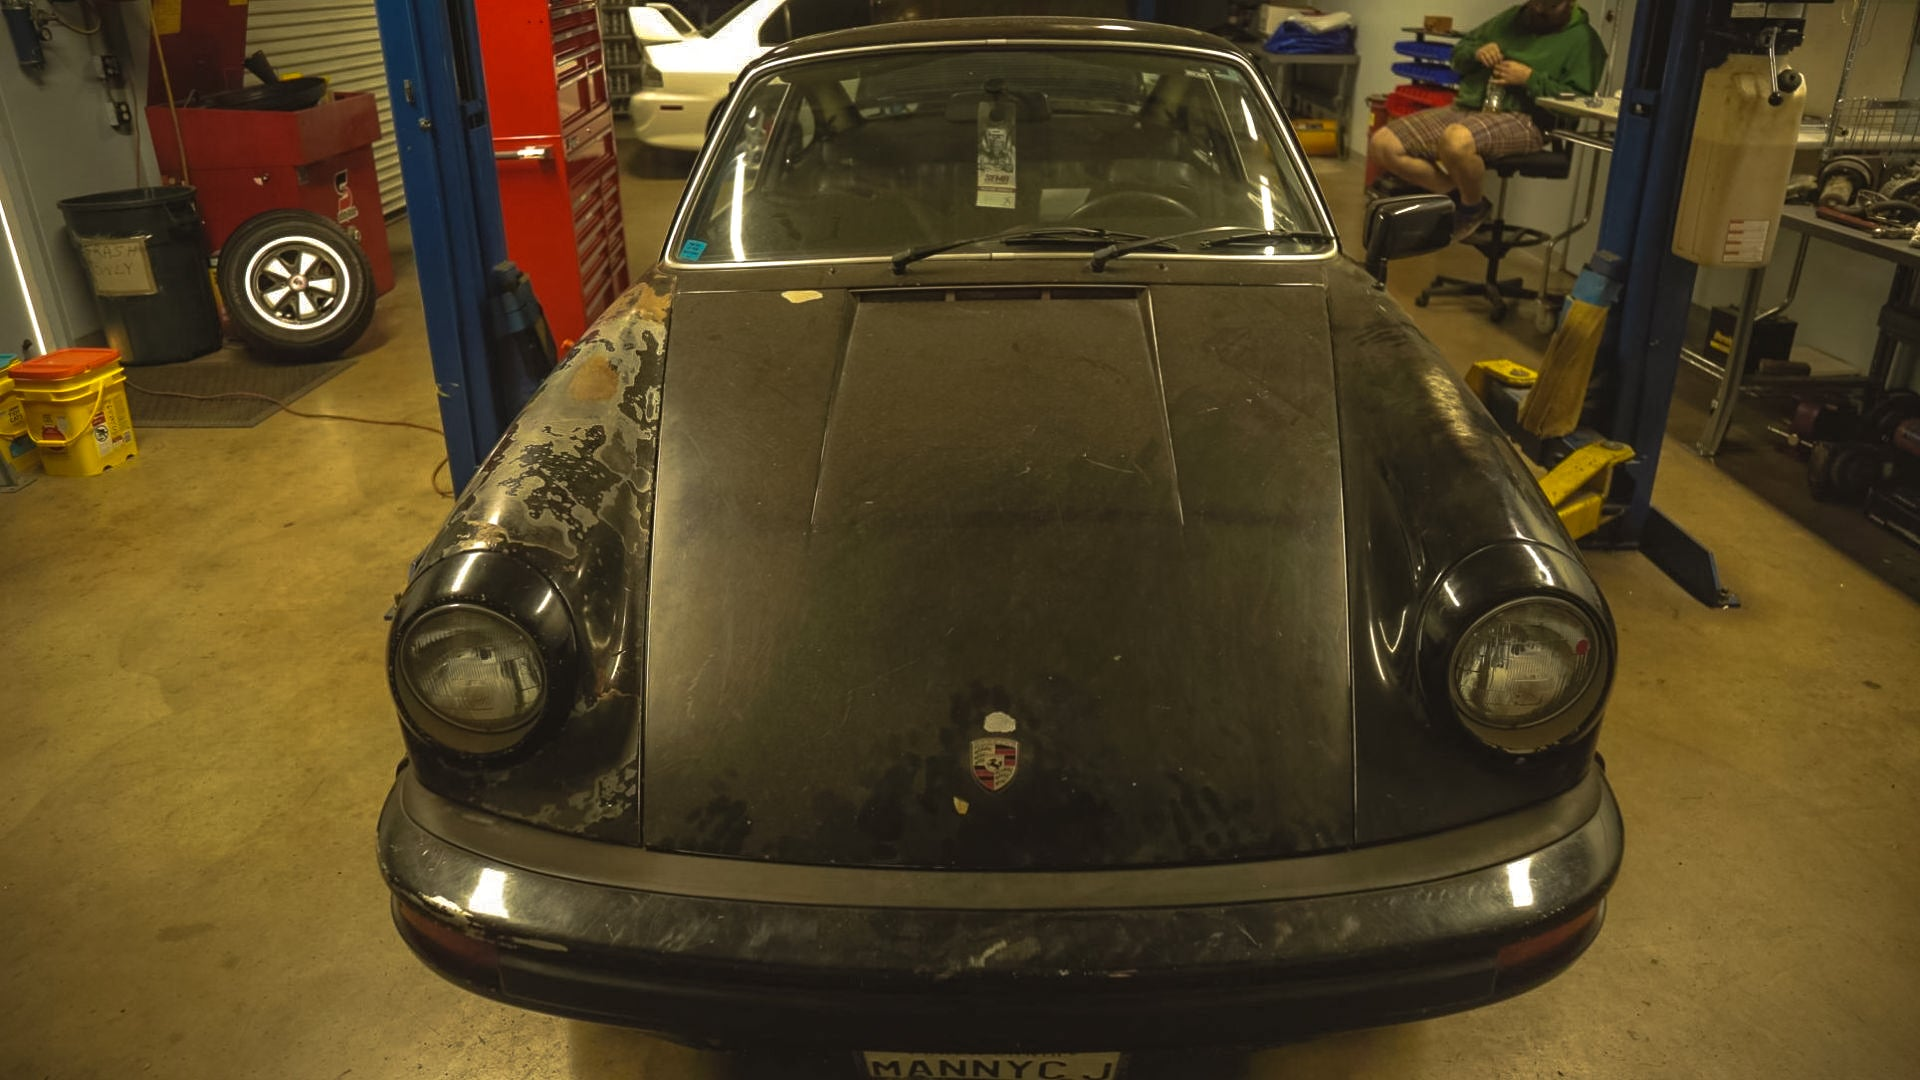 A classic, air-cooled Porsche in a mechanic's bay.